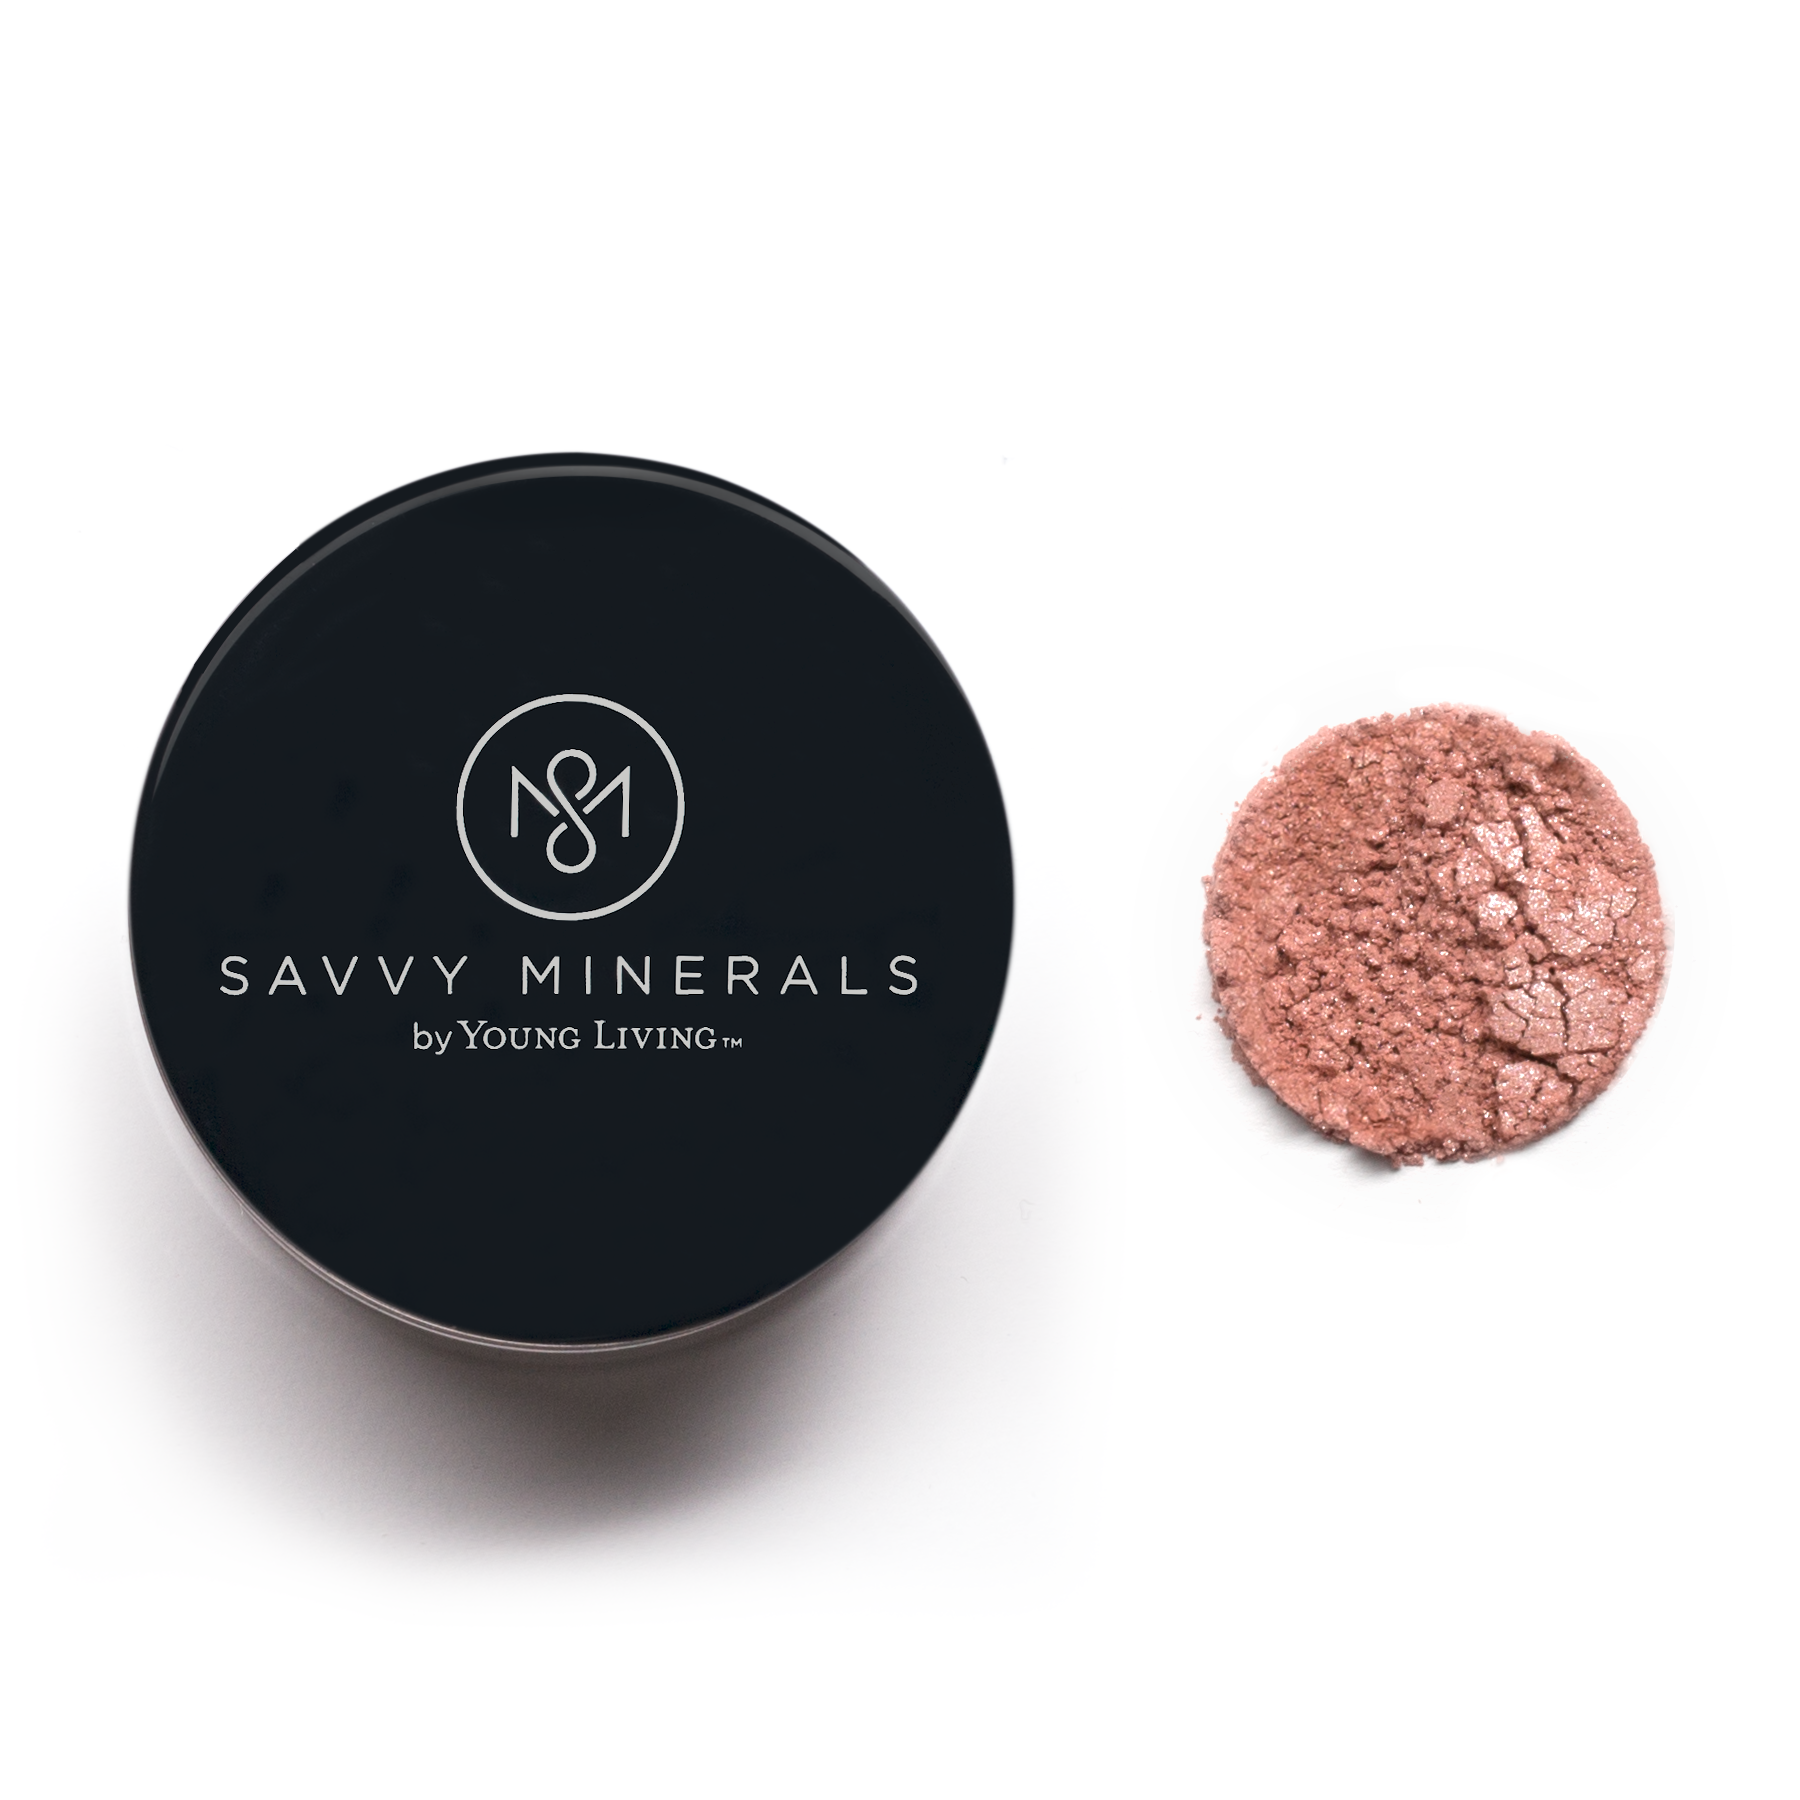 Savvy Minerals by Young Living Blush